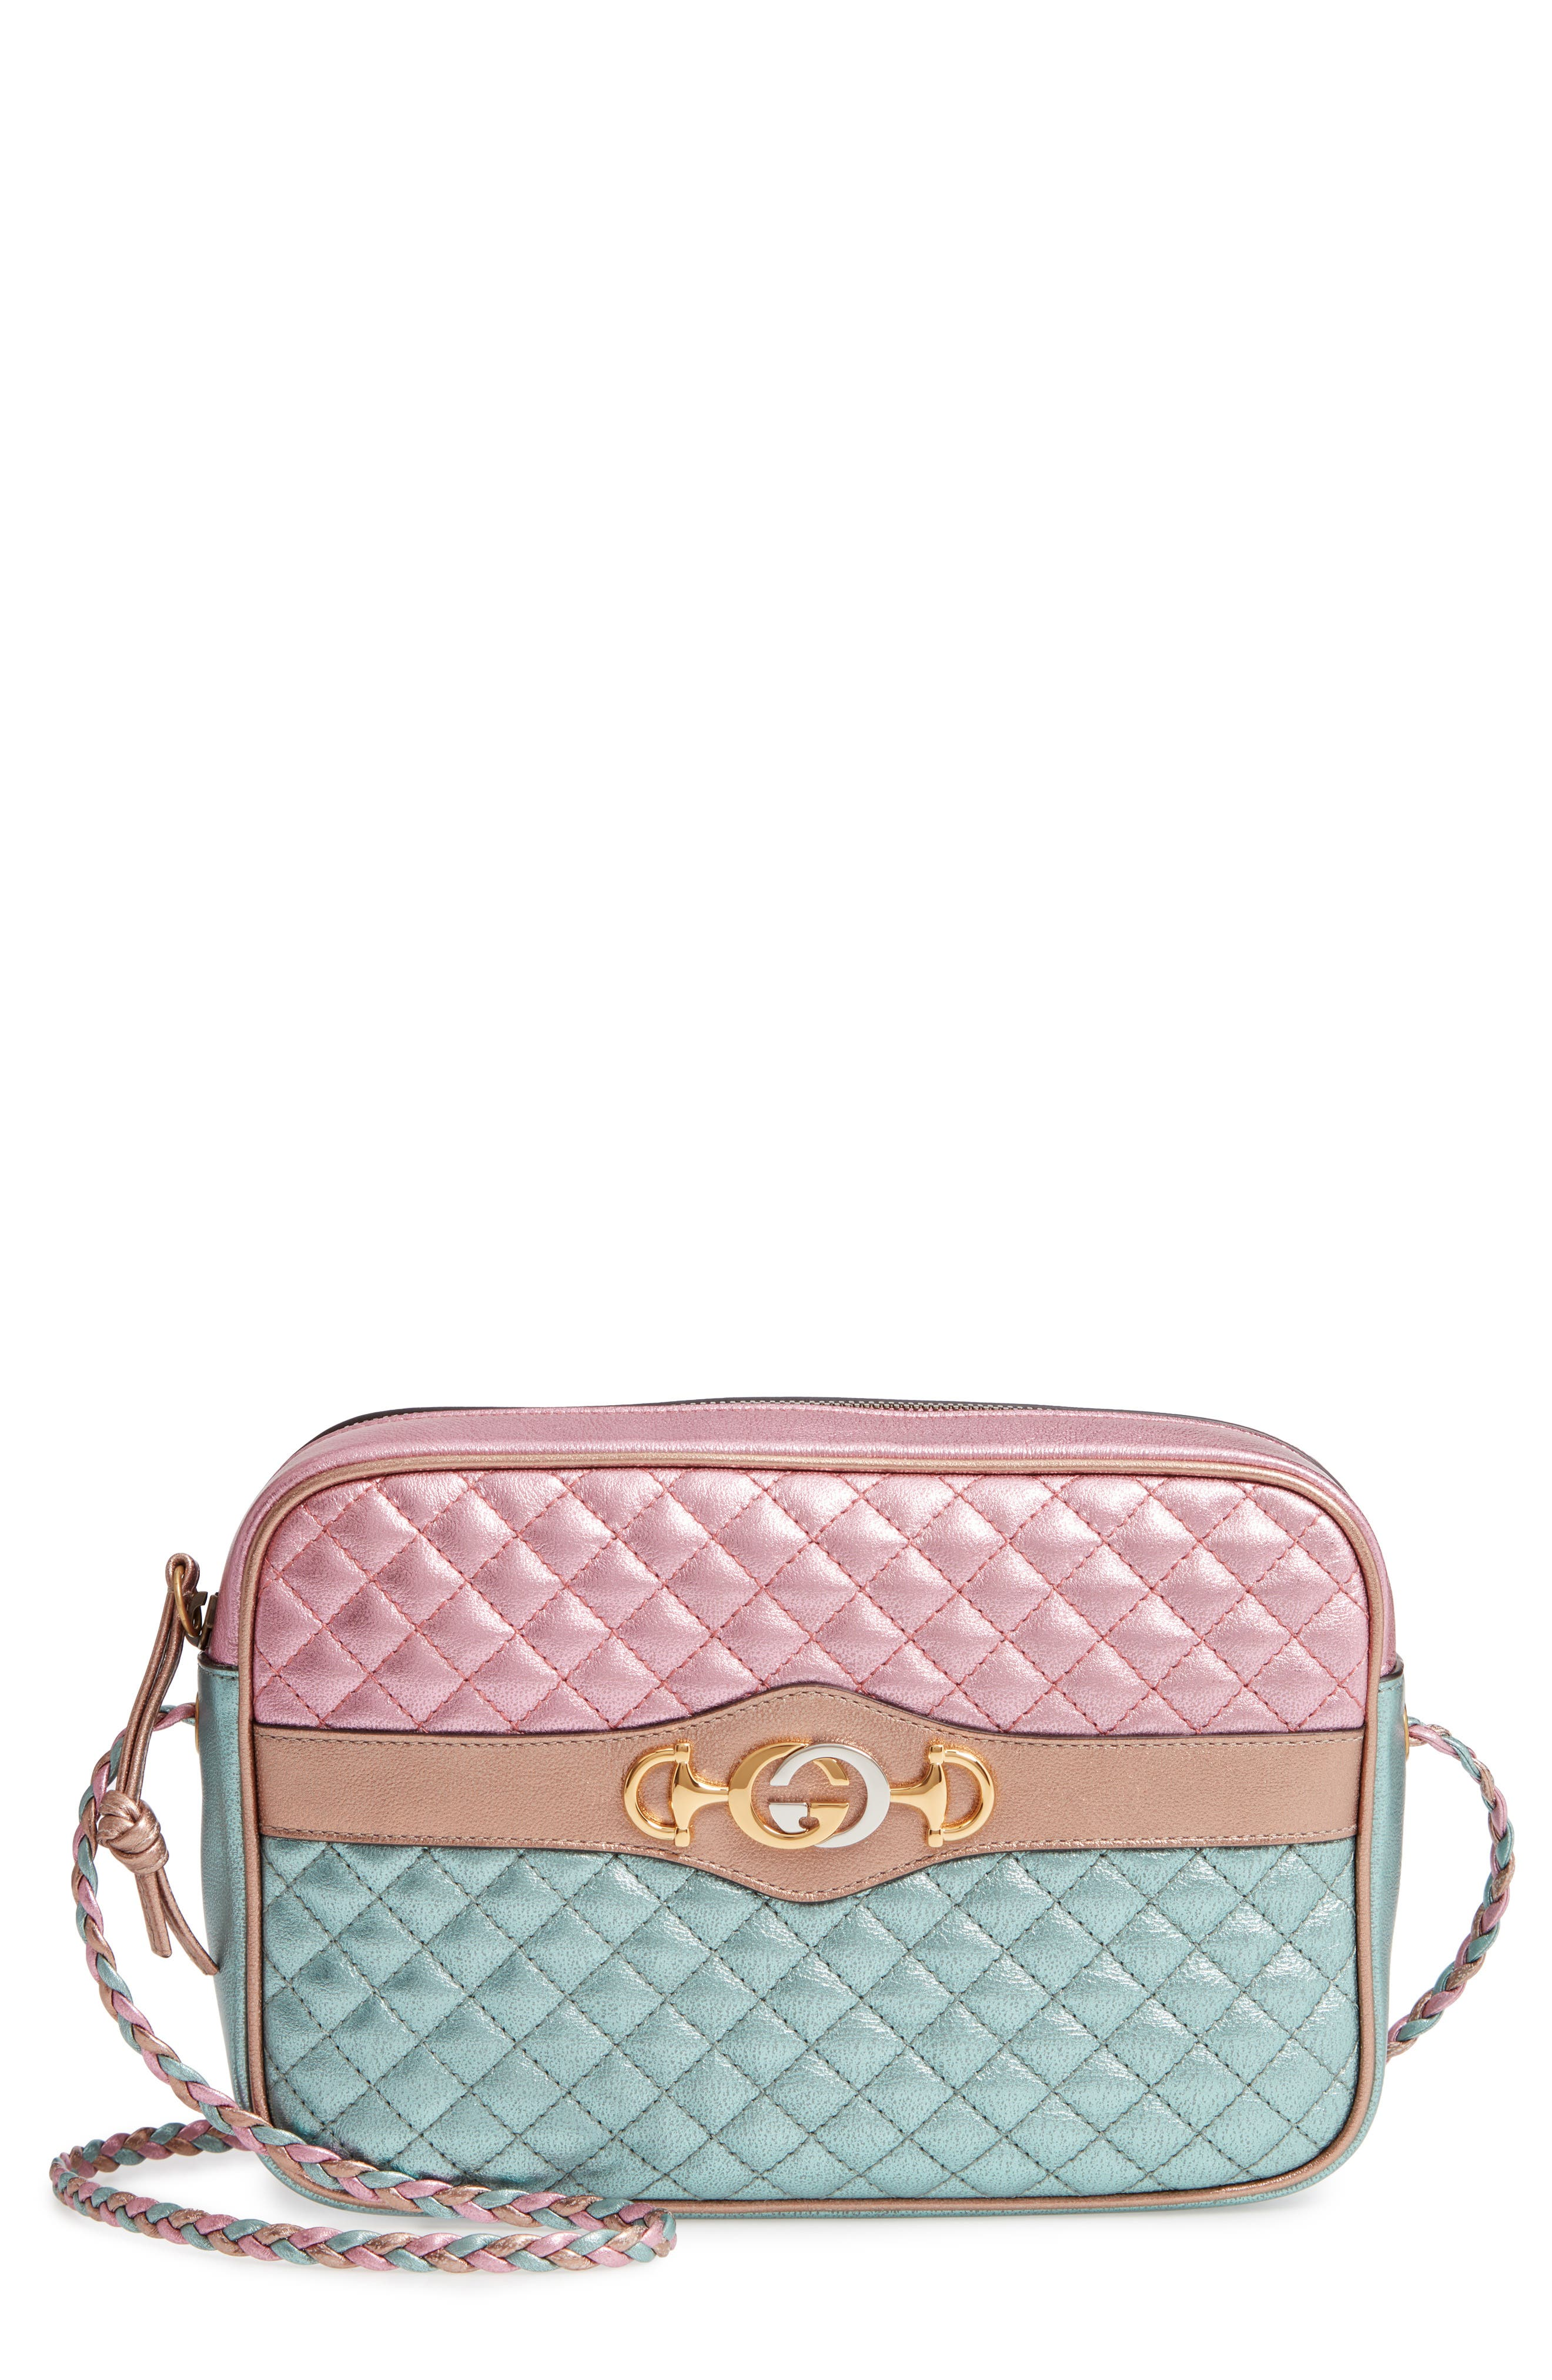 GUCCI, Small Quilted Metallic Leather Shoulder Bag, Main thumbnail 1, color, ROSE/ BLUE